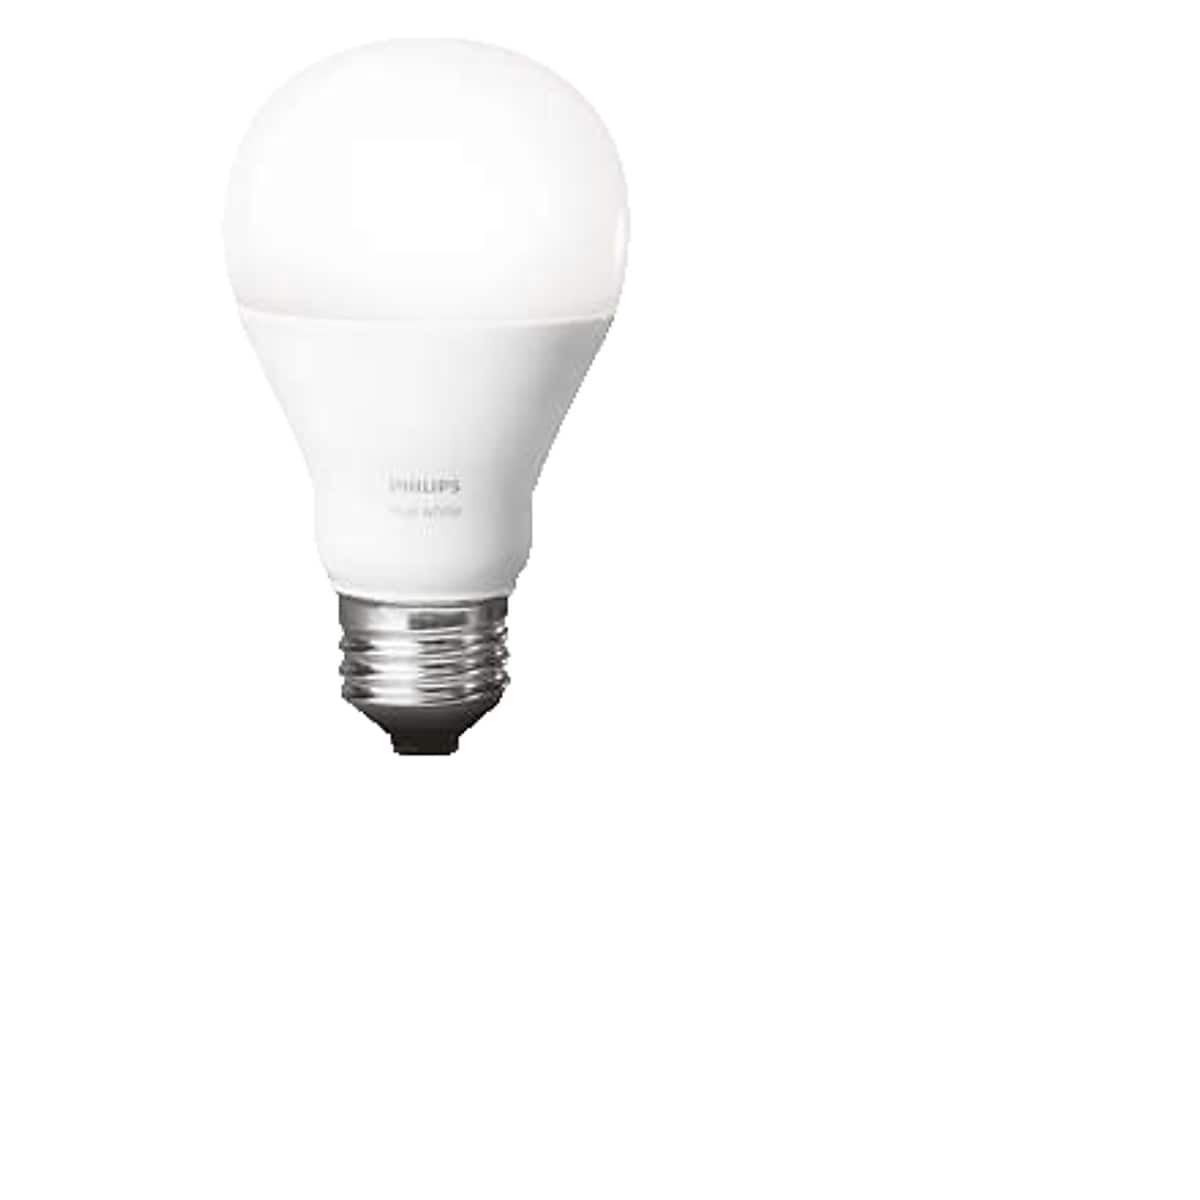 LED-lamppu Philips Hue 9,5 W E27